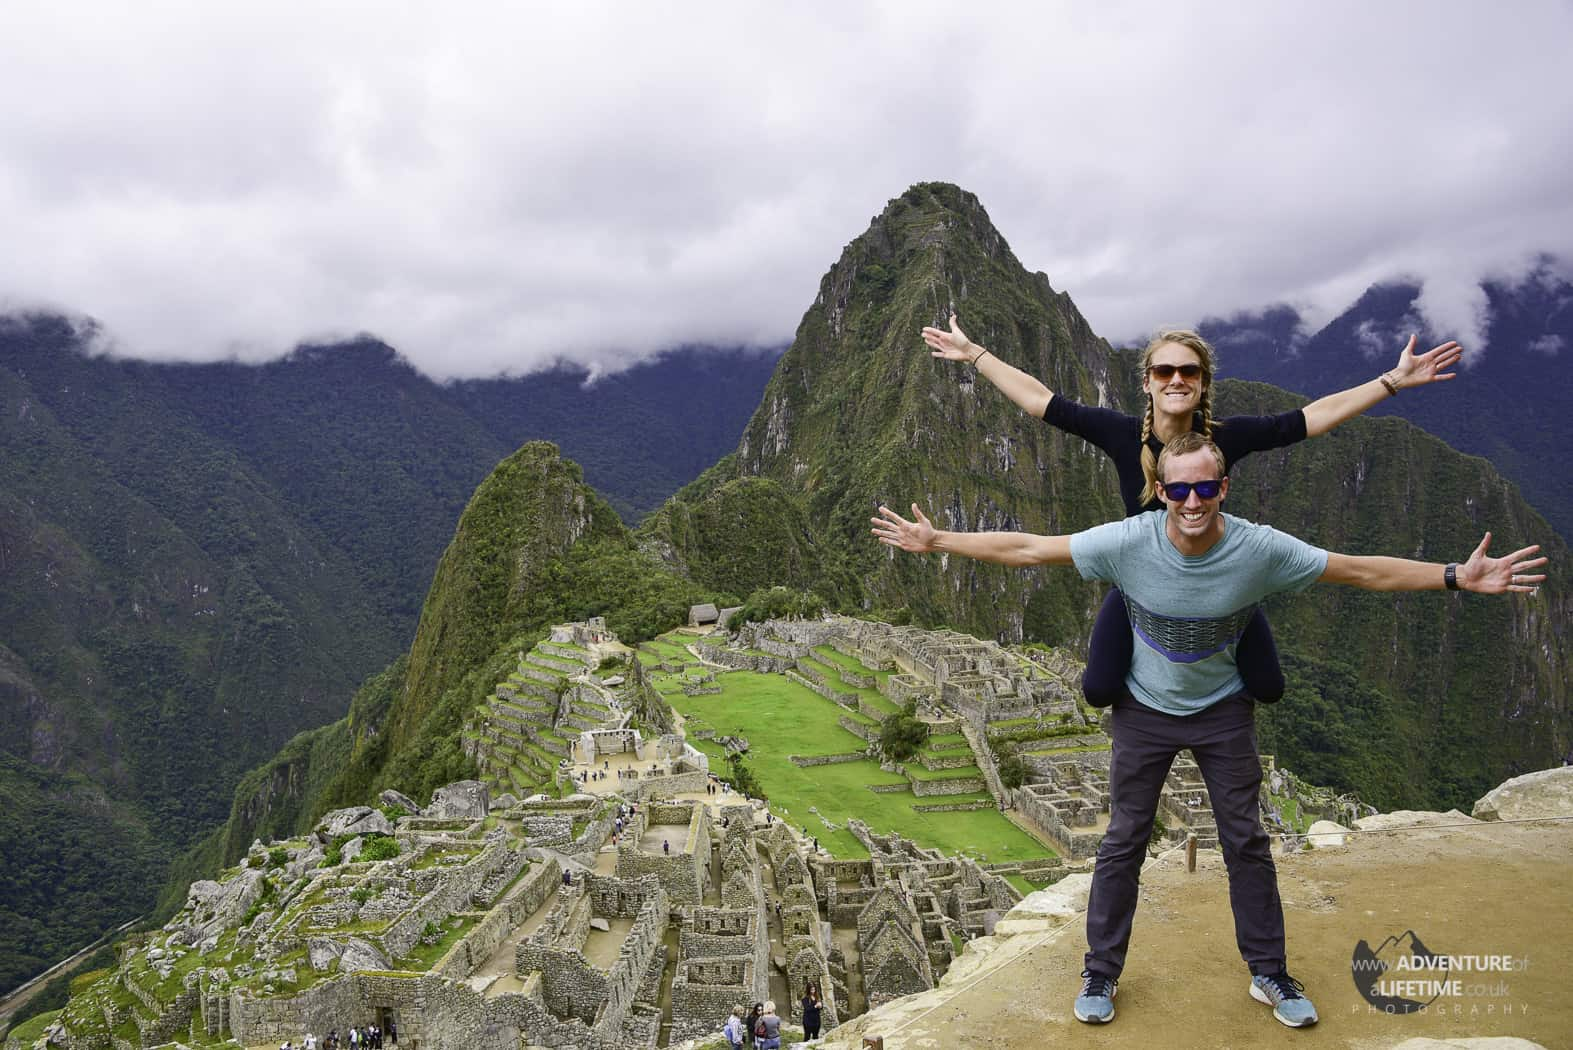 Michael & Dora at Machu Picchu